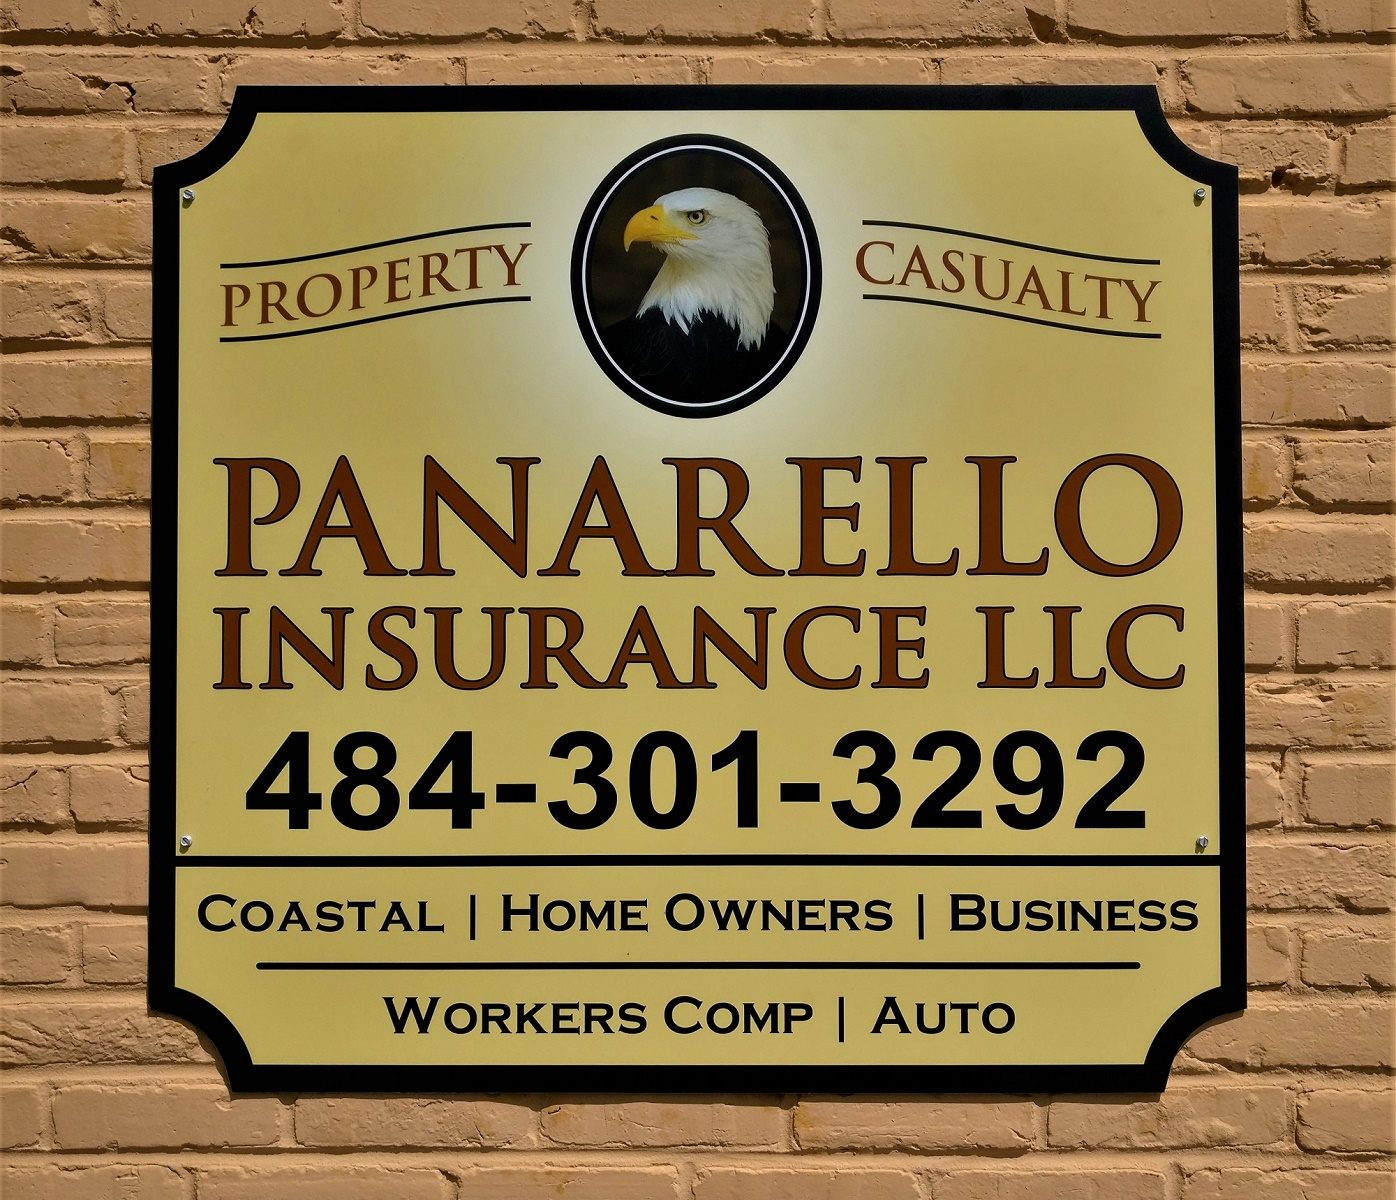 Panarello Insurance LLC